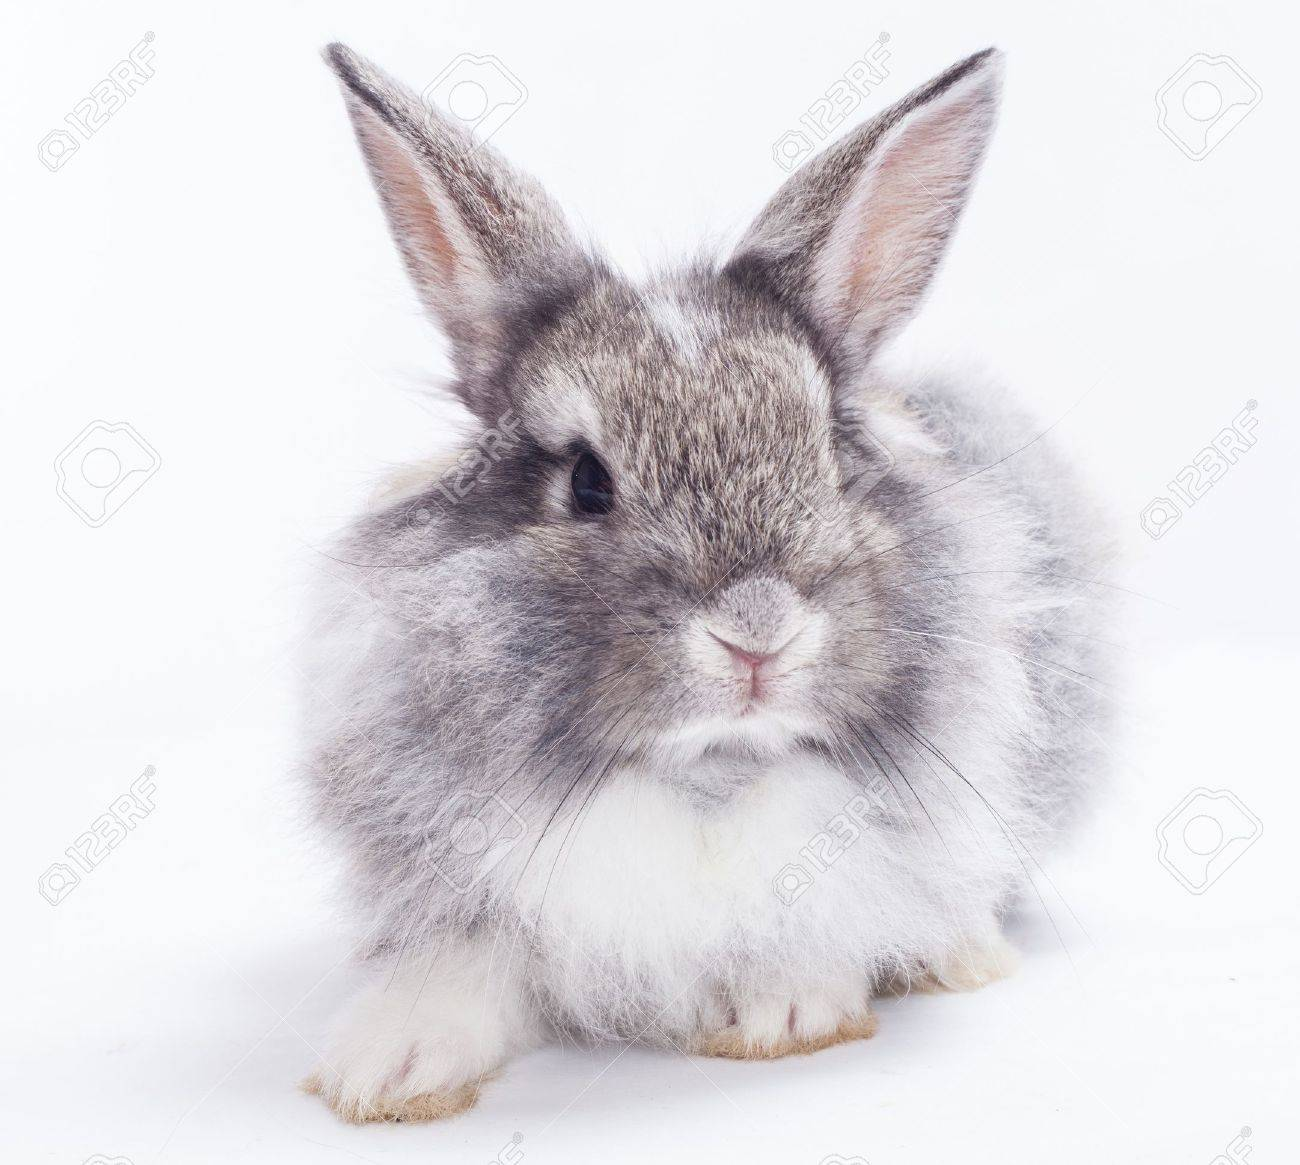 Rabbit isolated on a white background Stock Photo - 15097393